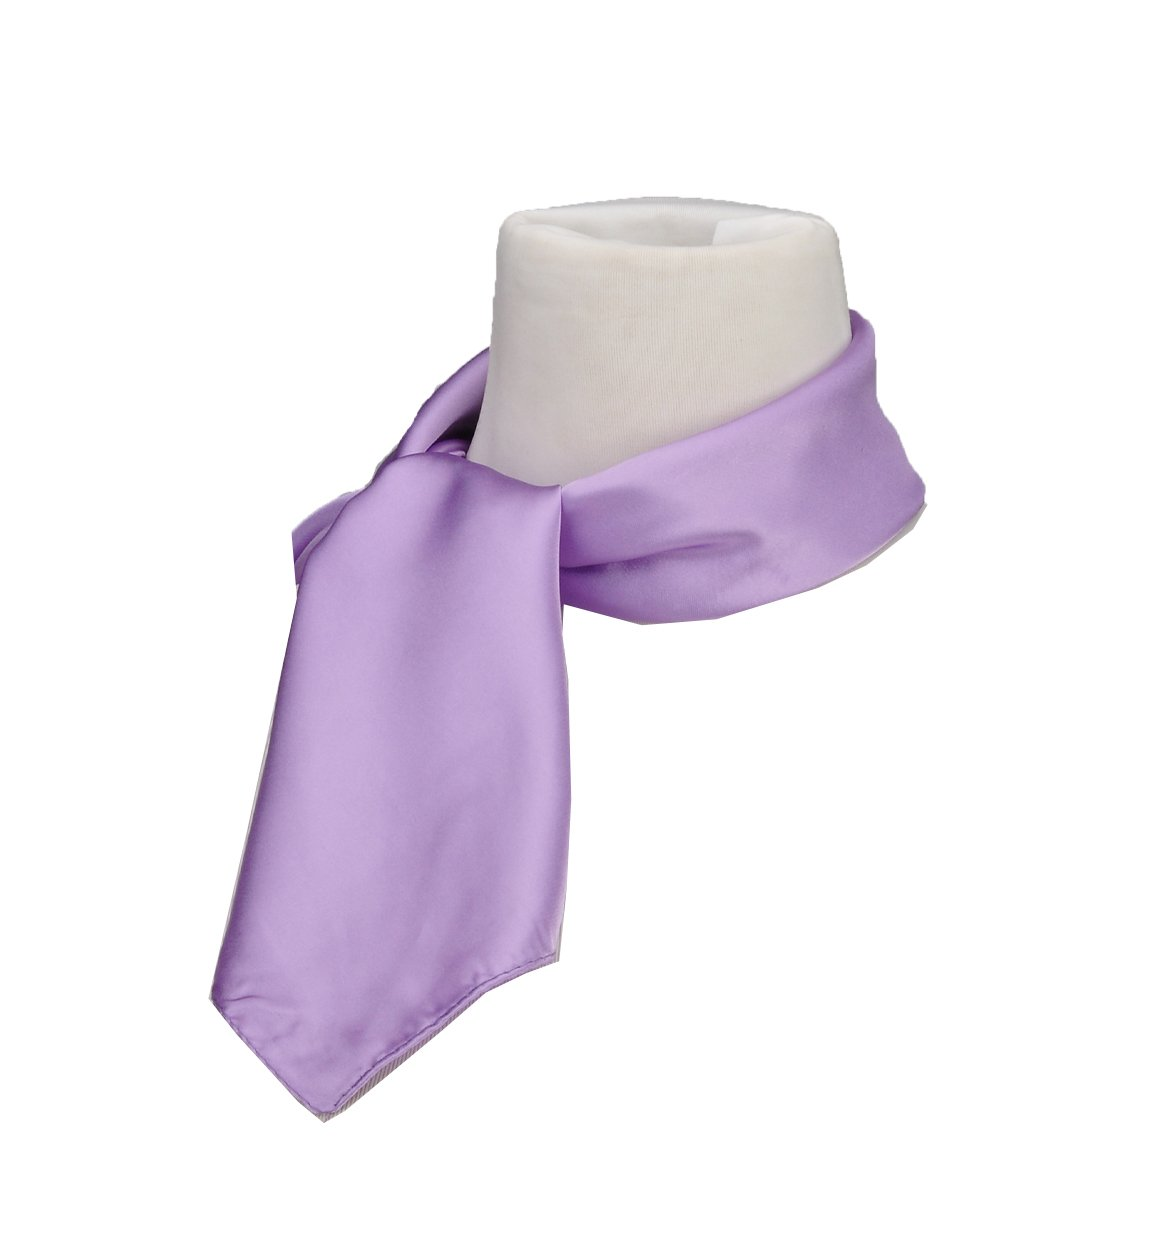 Silk Feel Soft Satin Square Scarf Head Neck Multiuse Solid Colors Available Lavender